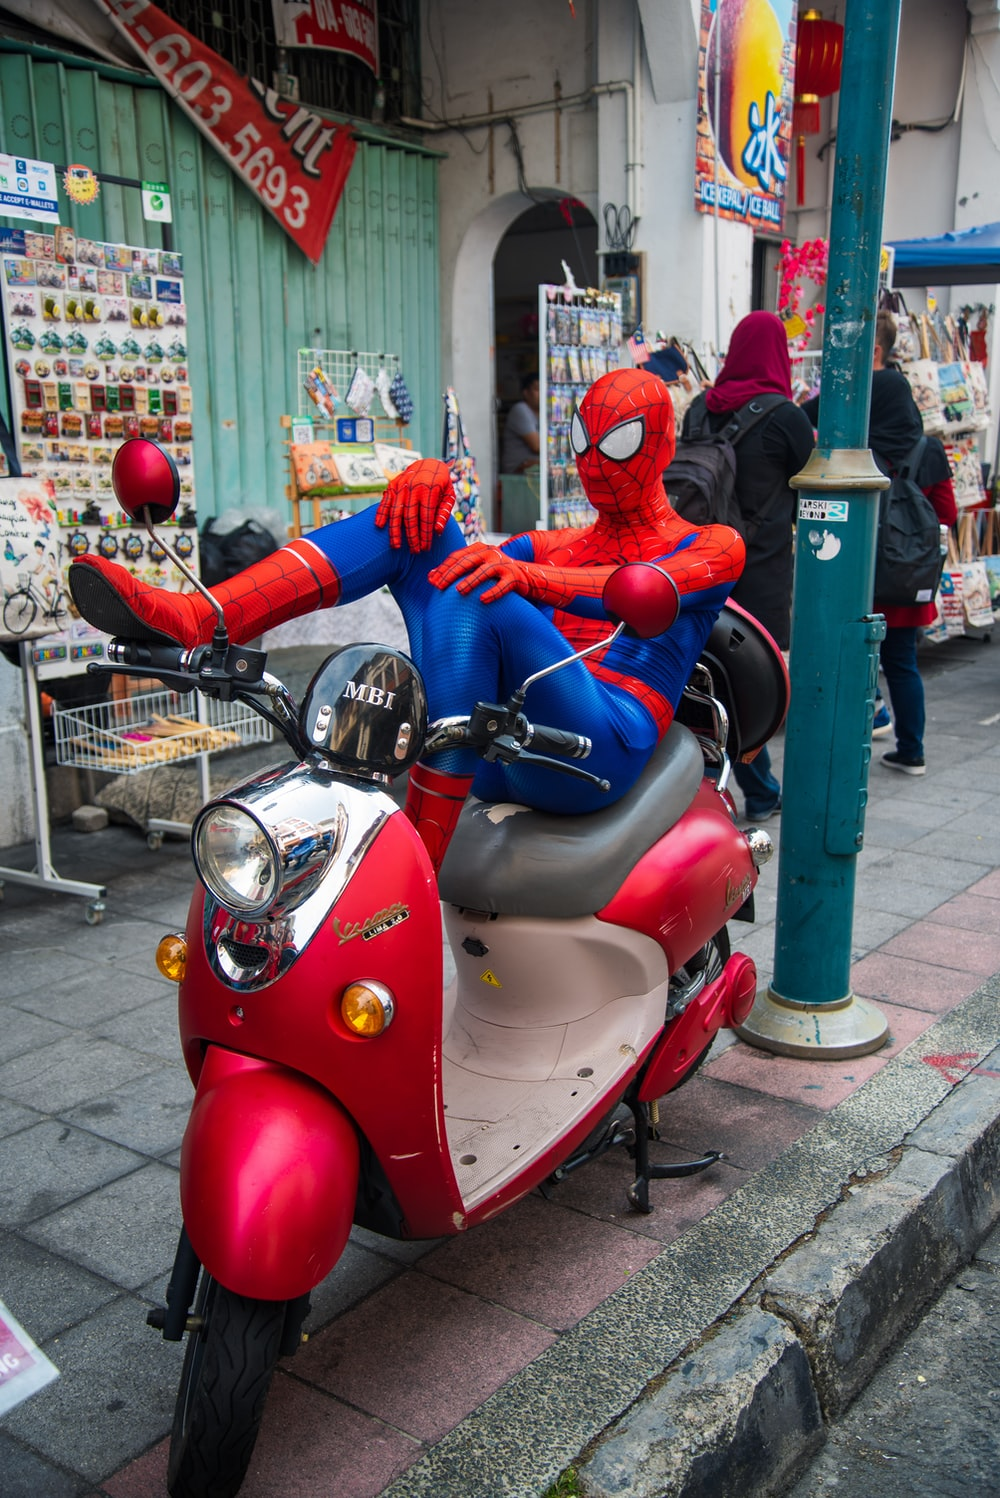 Spider-Man sitting on the motor scooter